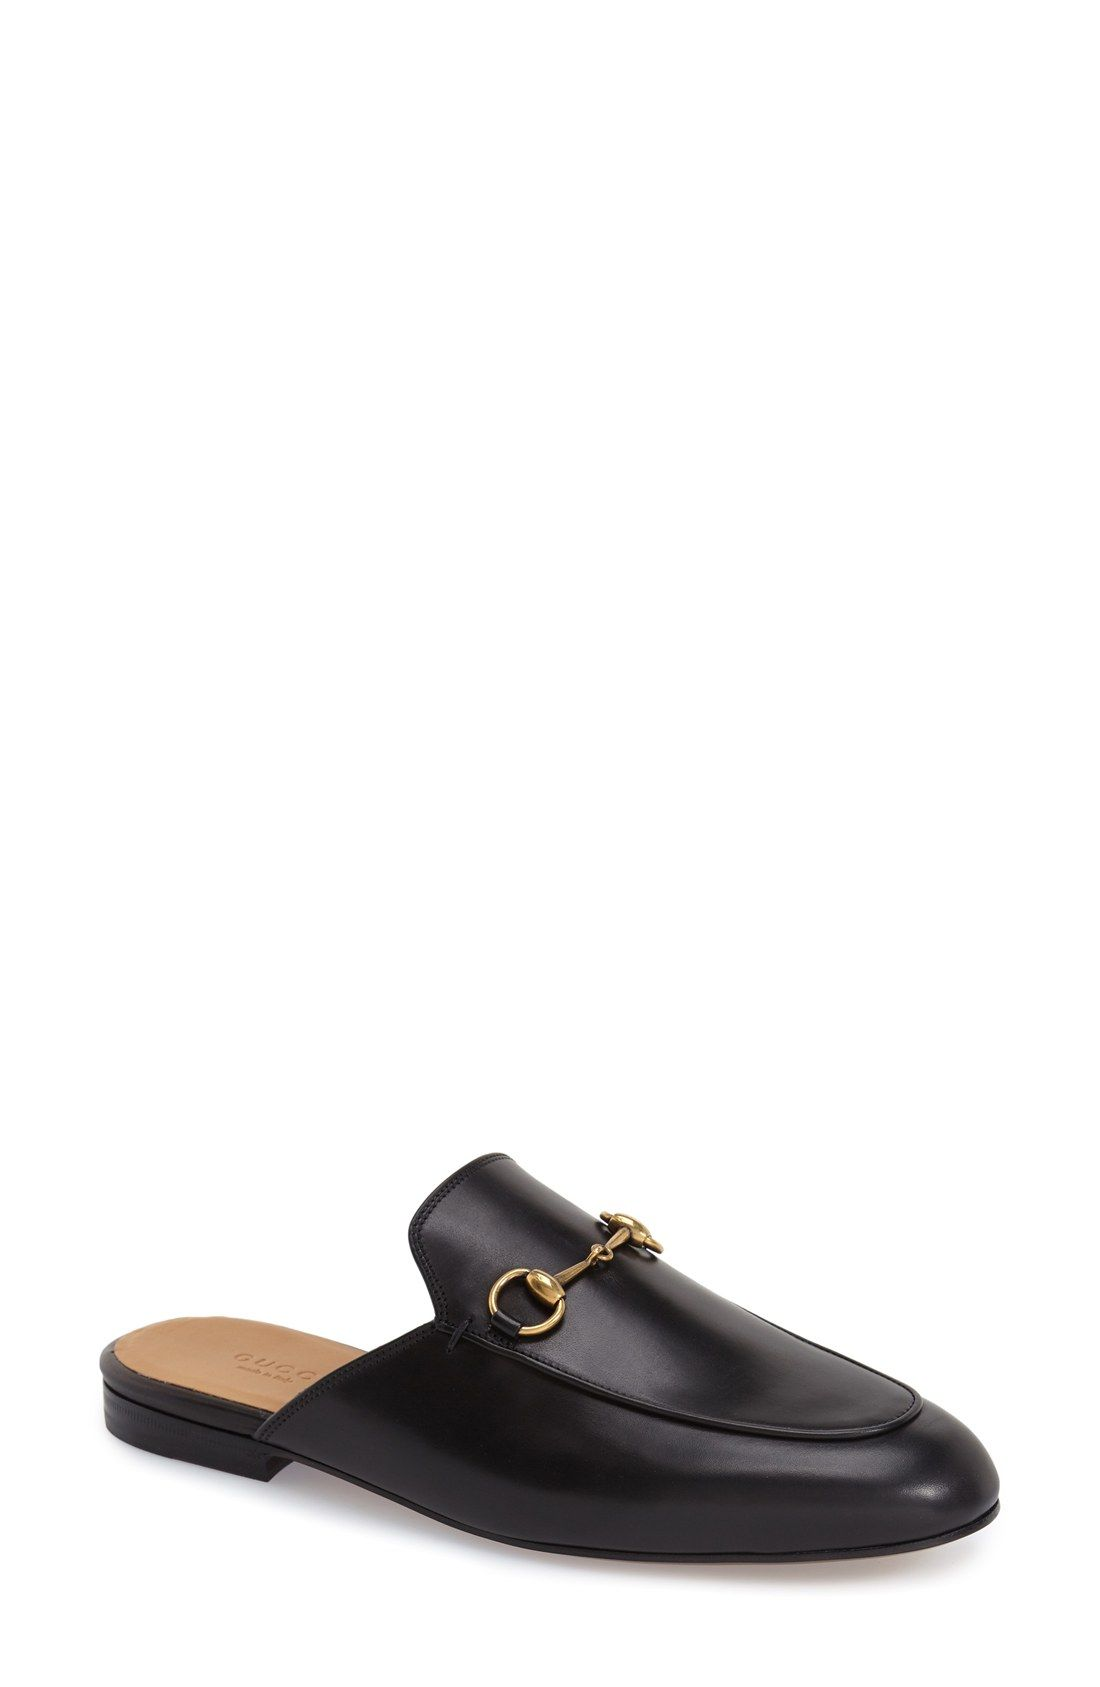 Princetown Loafer Mule | Loafers women, Gucci and Footwear